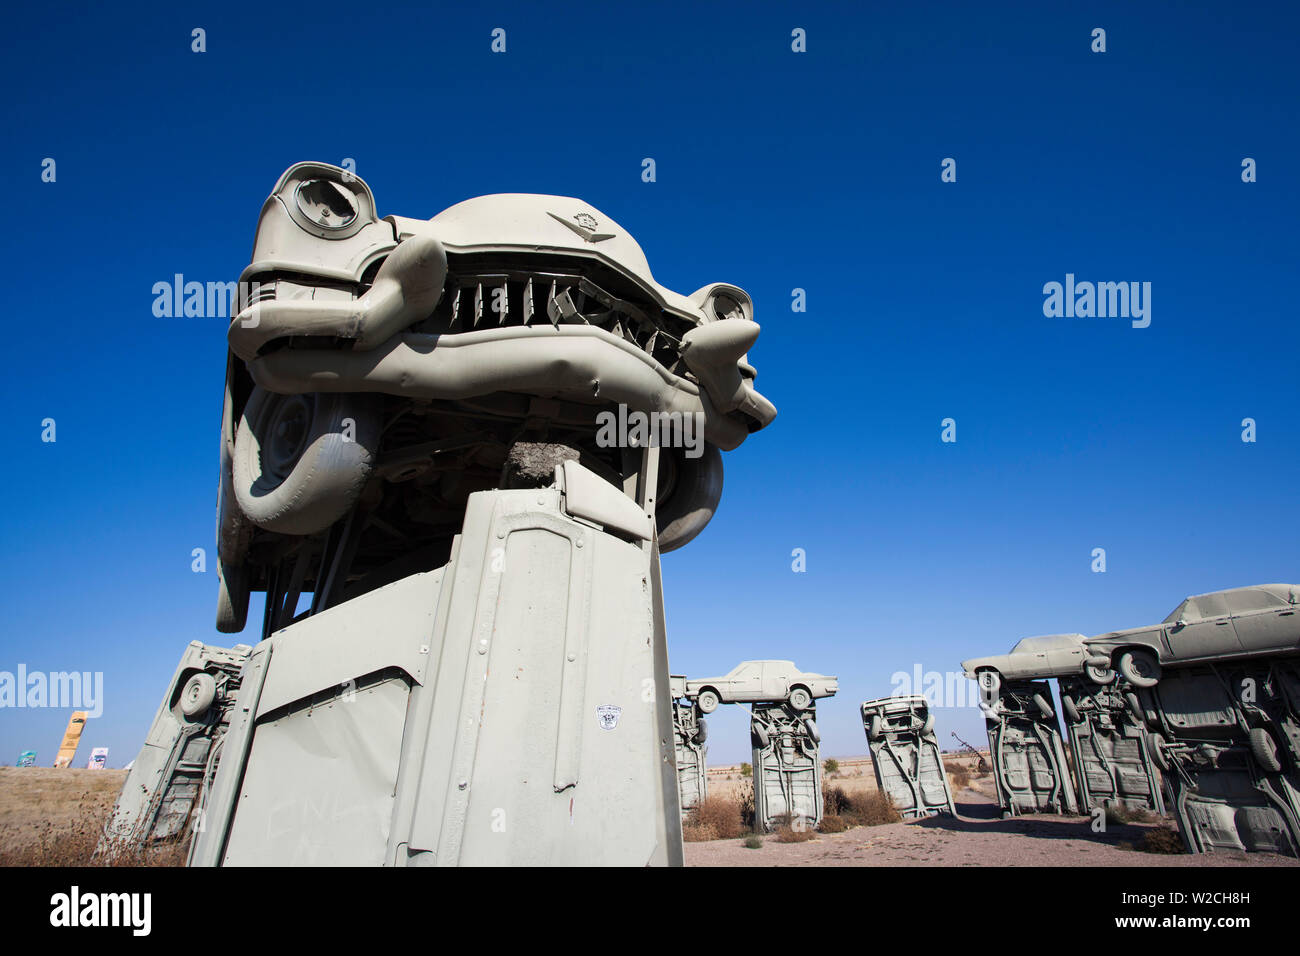 USA, Nebraska, Alliance, Carhenge, outdoor sculpture modelled on Stonehenge in England but made of old cars Stock Photo